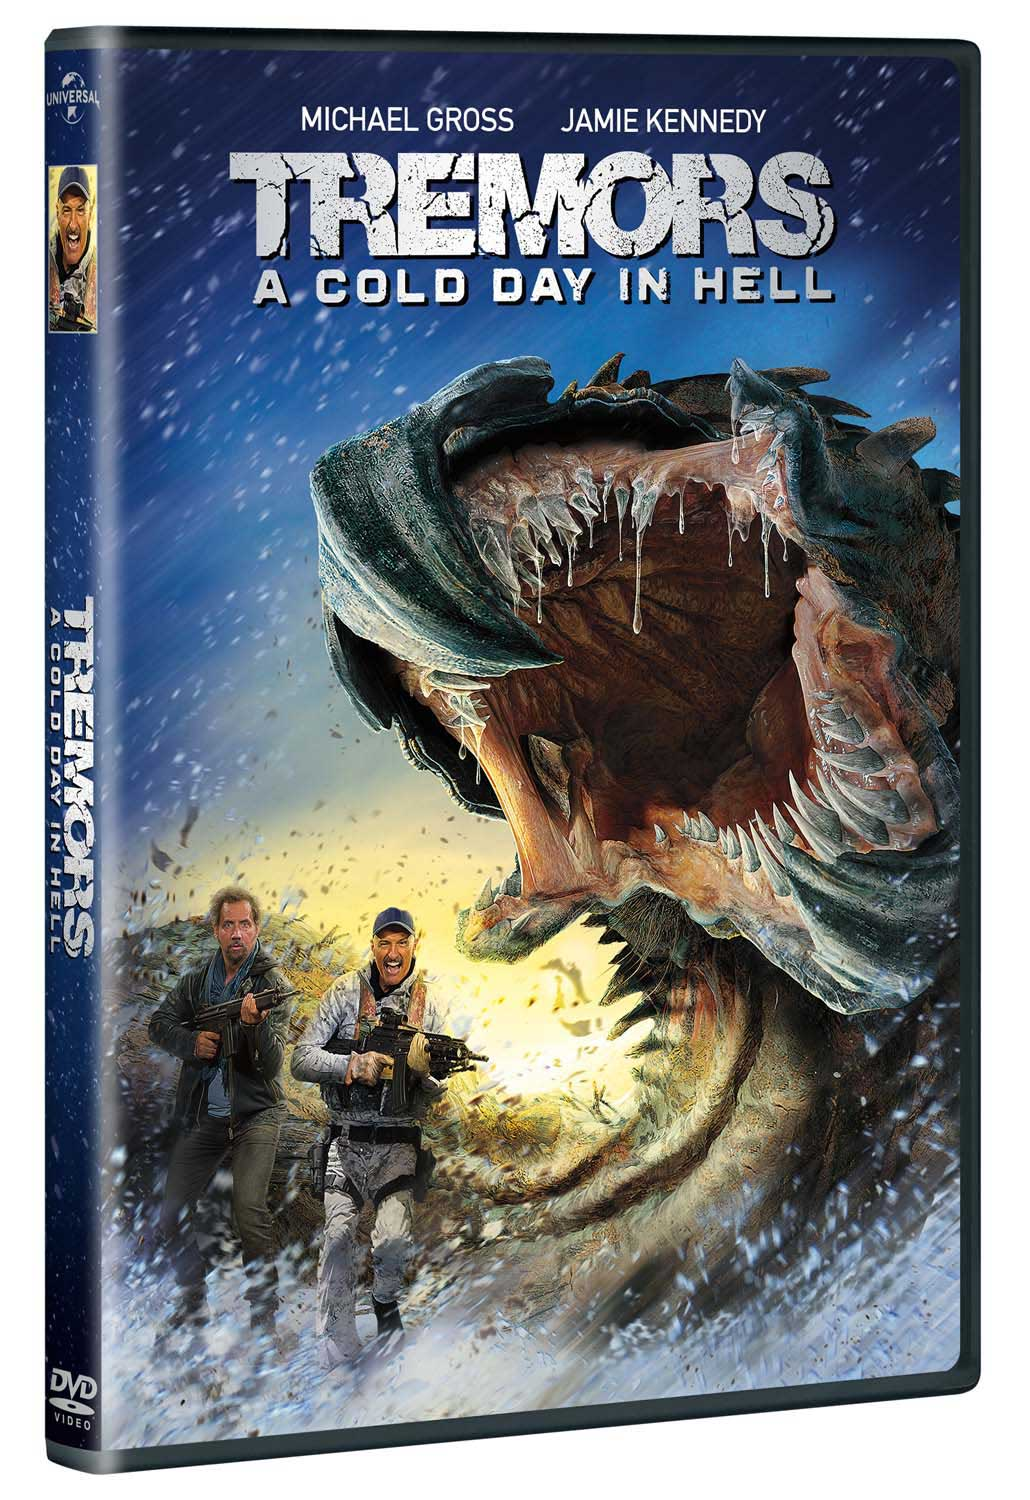 TREMORS A COLD DAY IN HELL (DVD)